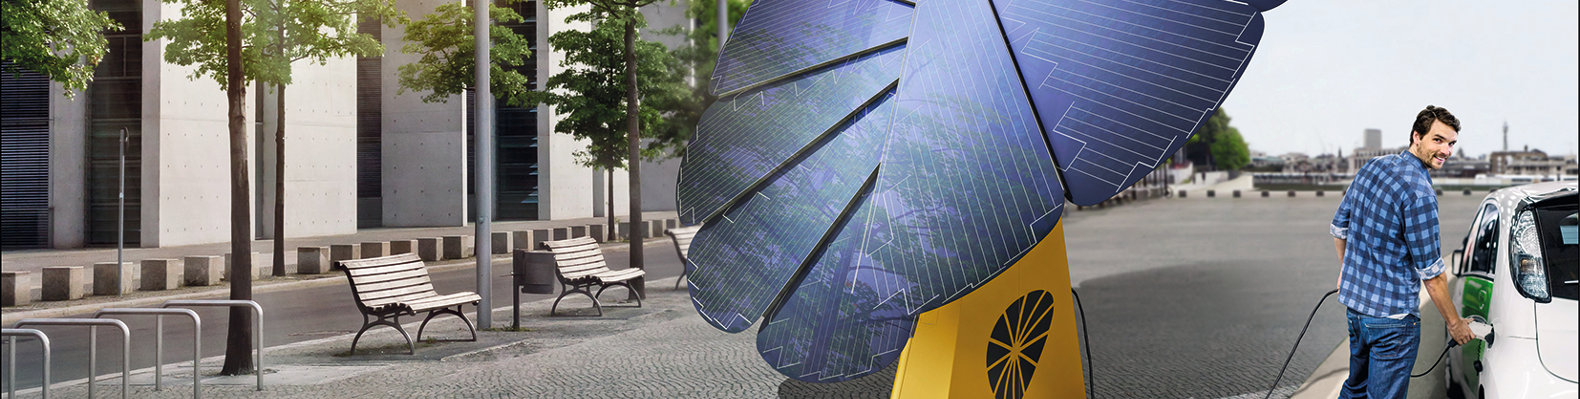 Portable smartflower POP solar system produces 40% more energy